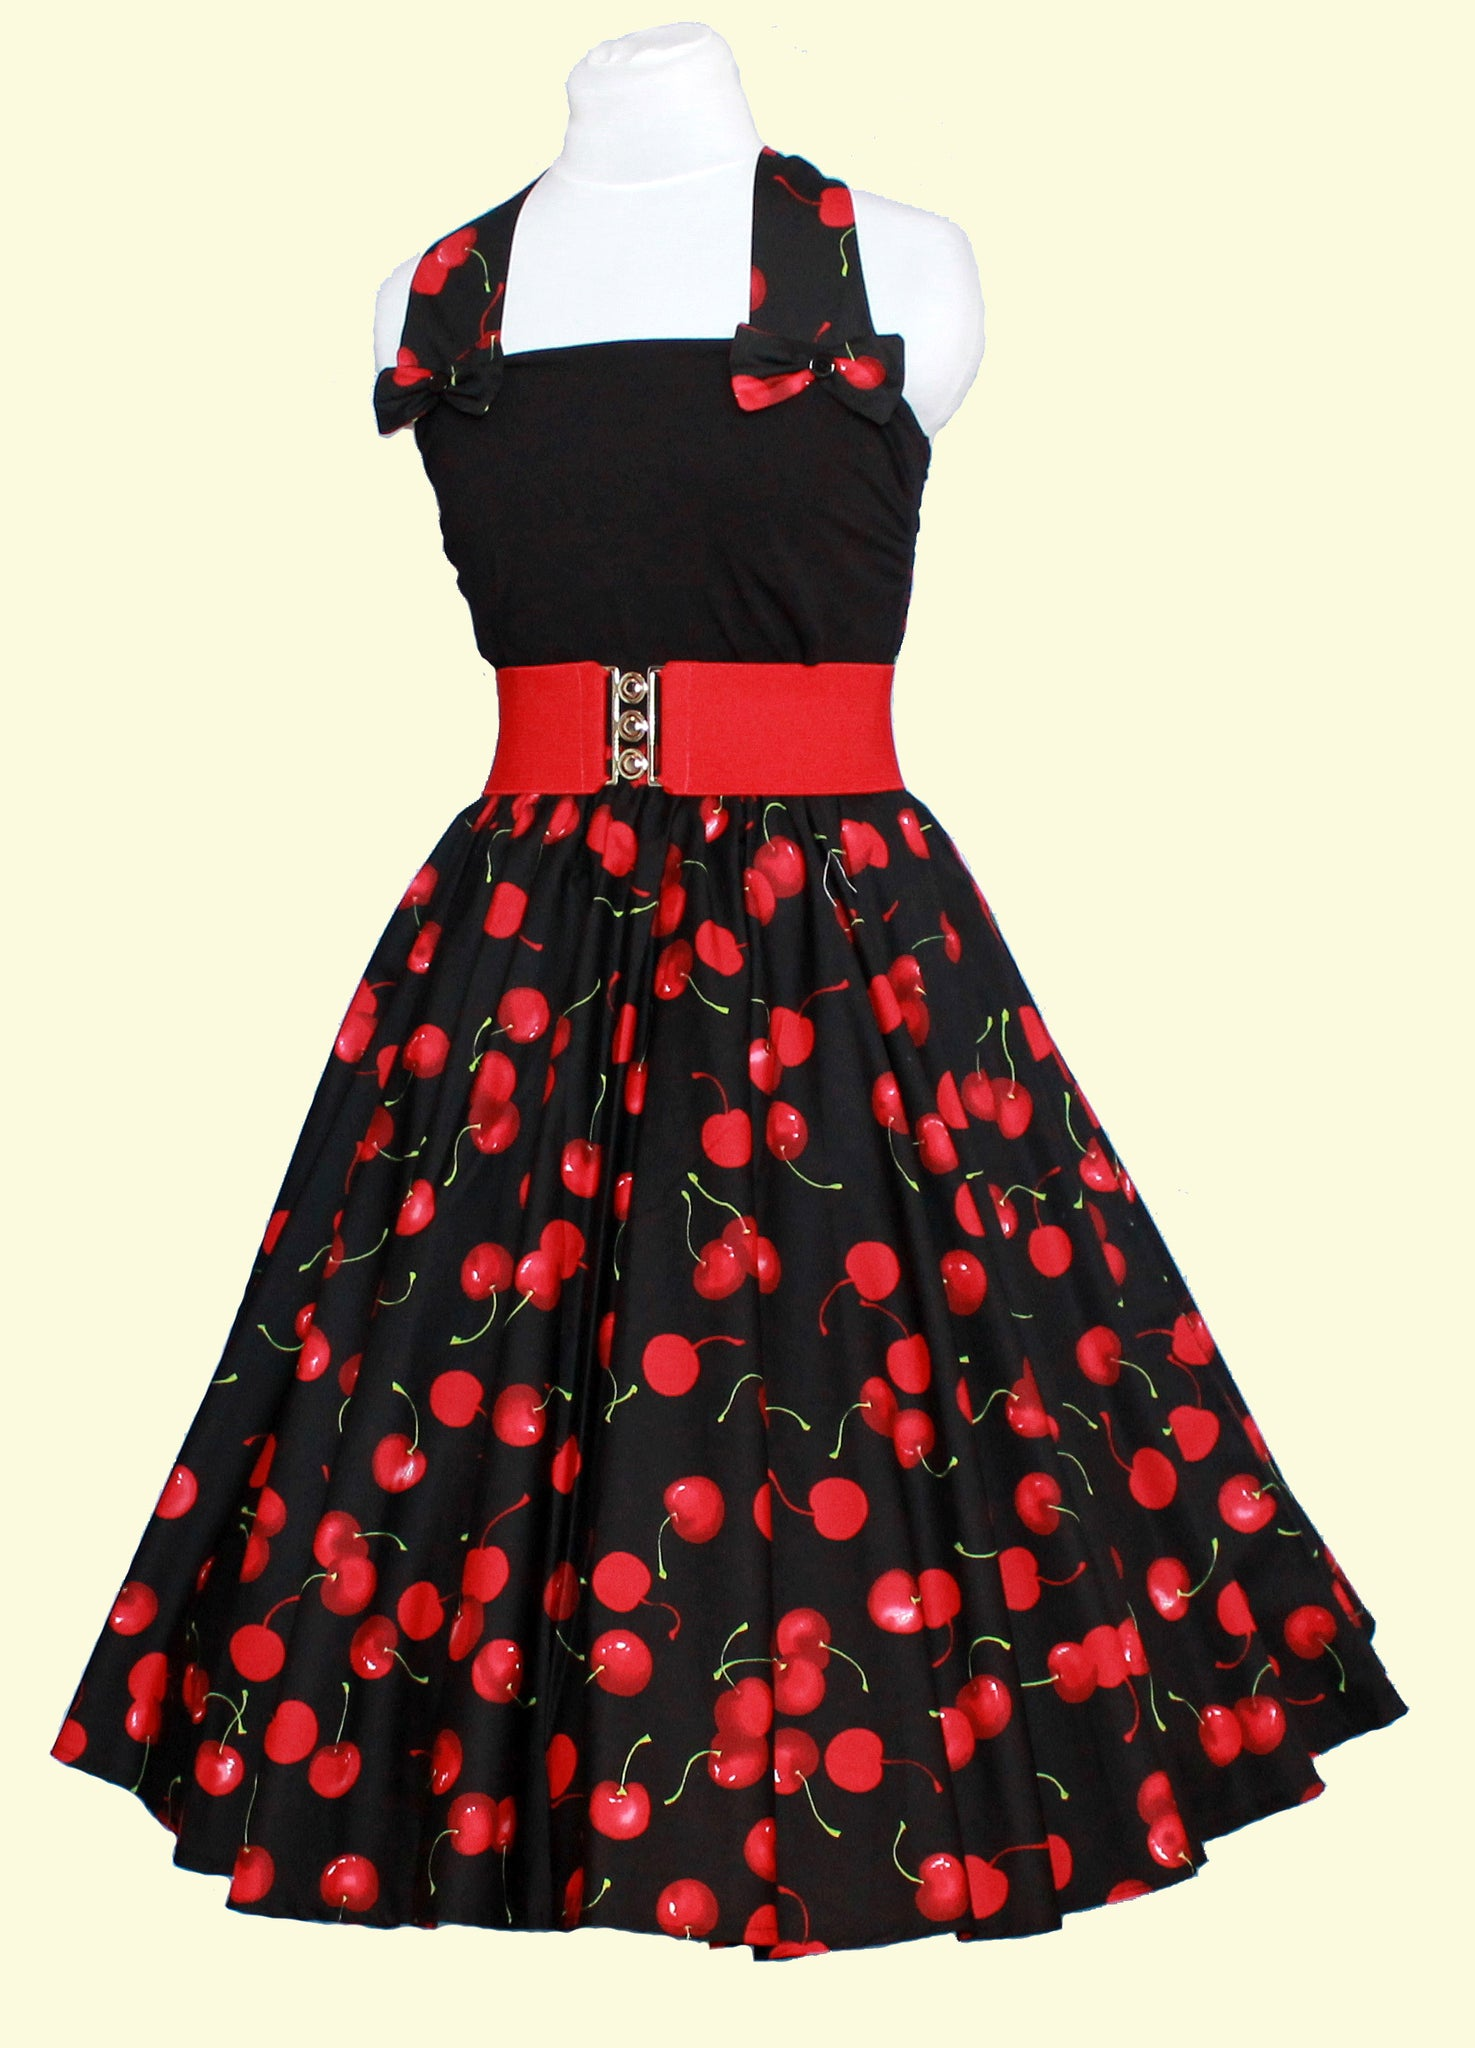 Peggy Circle Skirt- Large Black Cherry